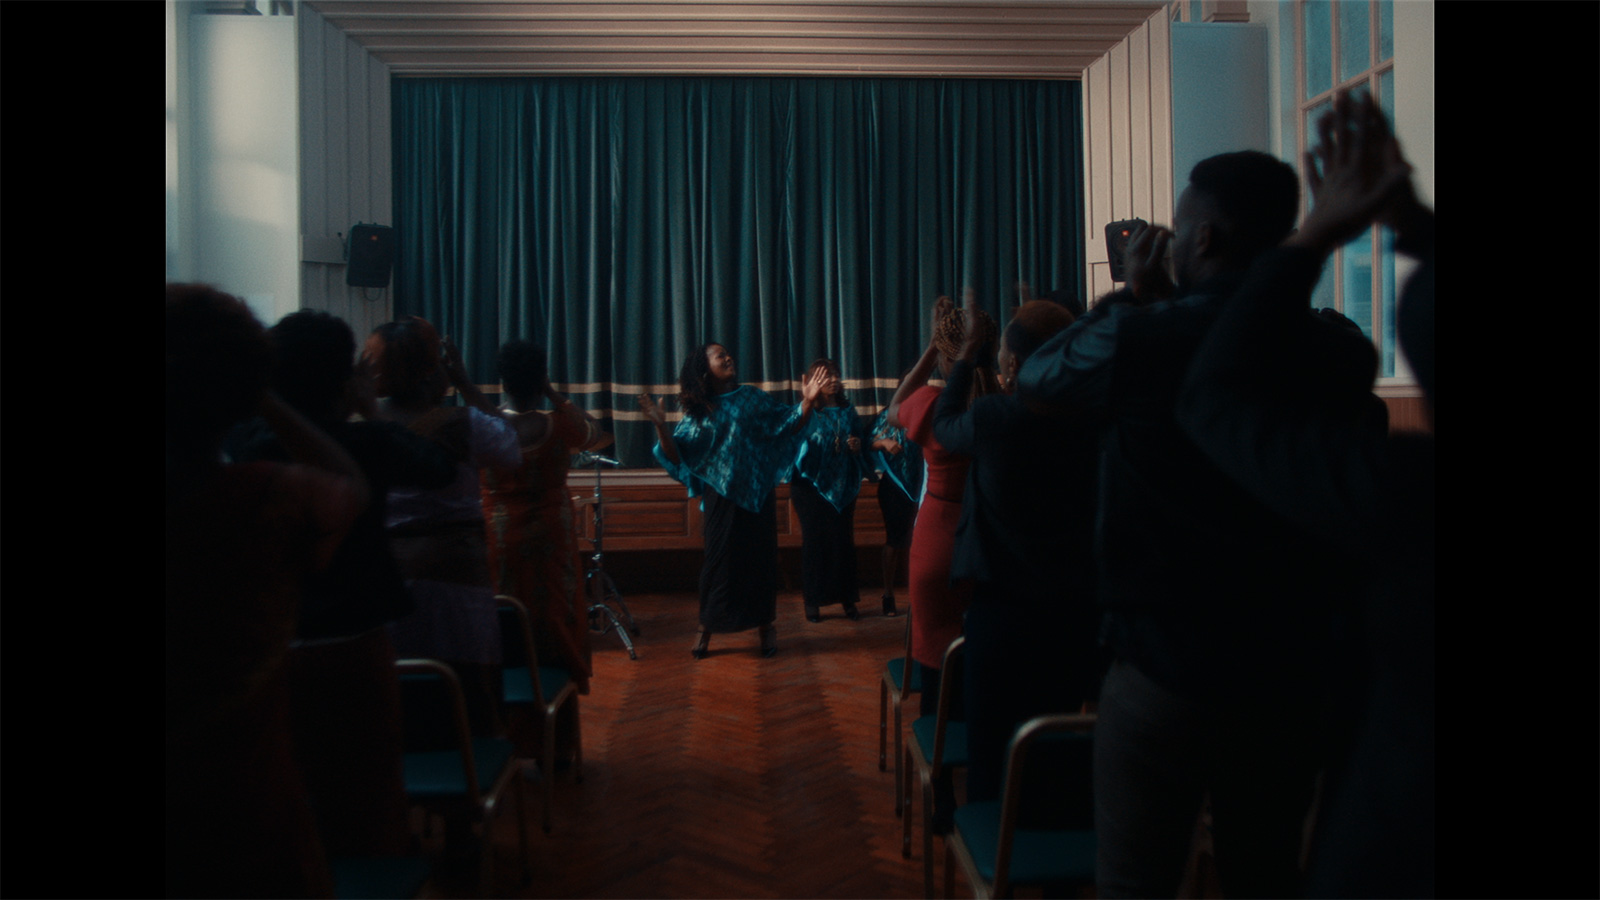 A look at the music video for Adelphi Music Factory's new track 'Javelin', directed by Fanny Hoetzeneder